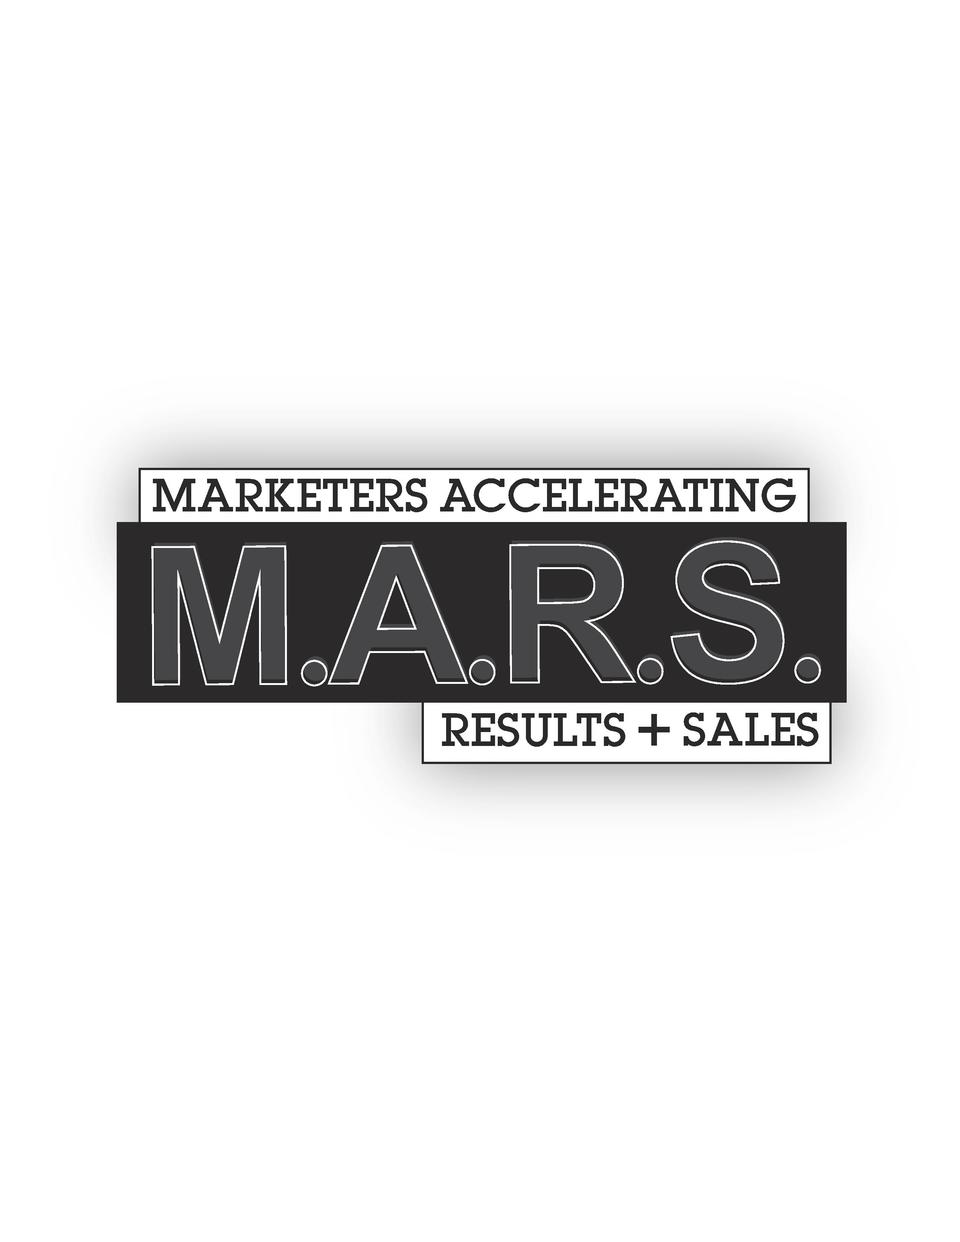 MARKETERS ACCELERATING  M.A.R.S. RESULTS   SALES